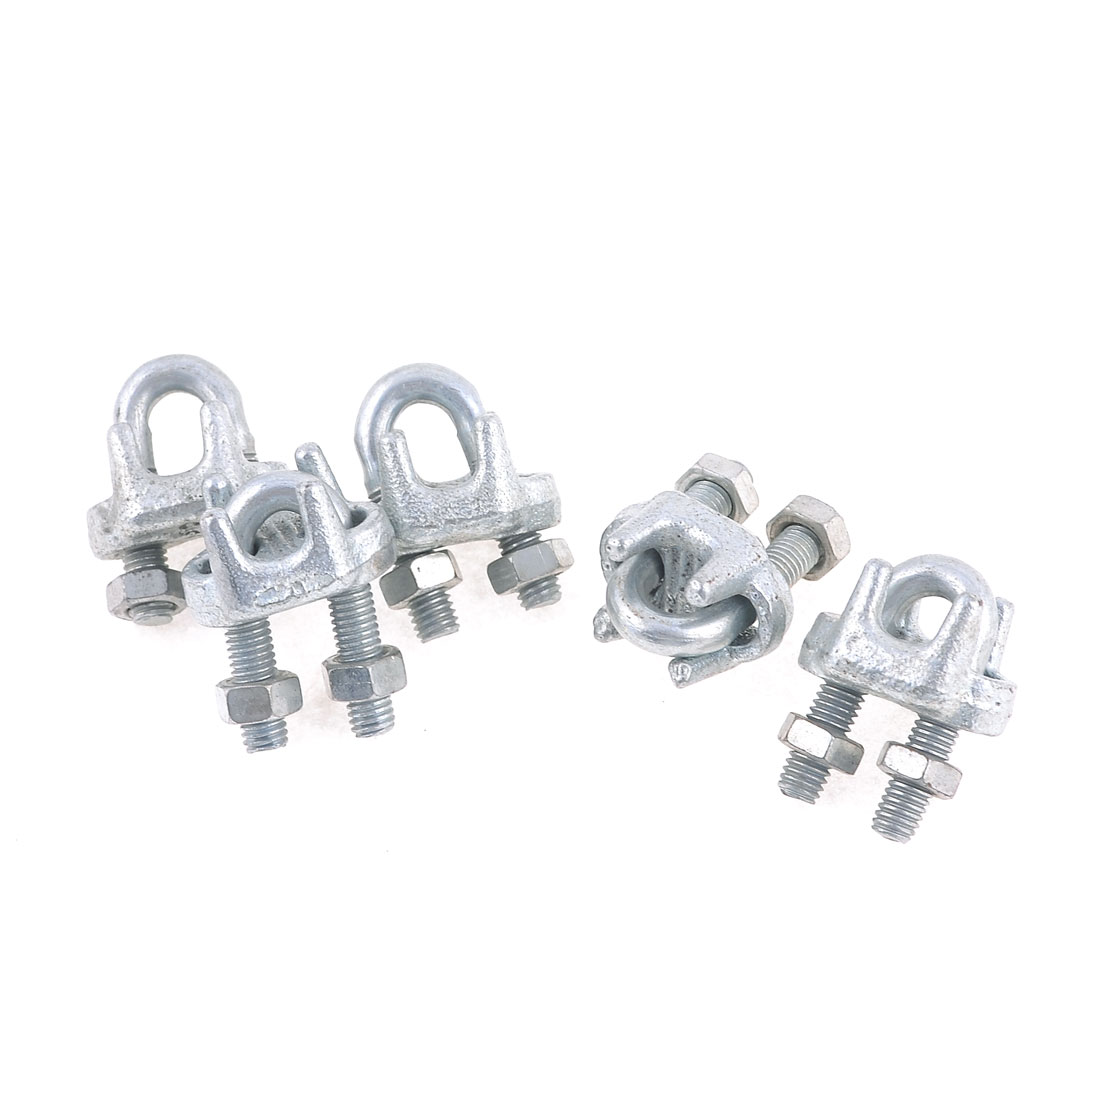 "Metal Saddle 5mm 1/5"" Wire Rope Clip U Bolt Clamp Fastener 5 Pcs"